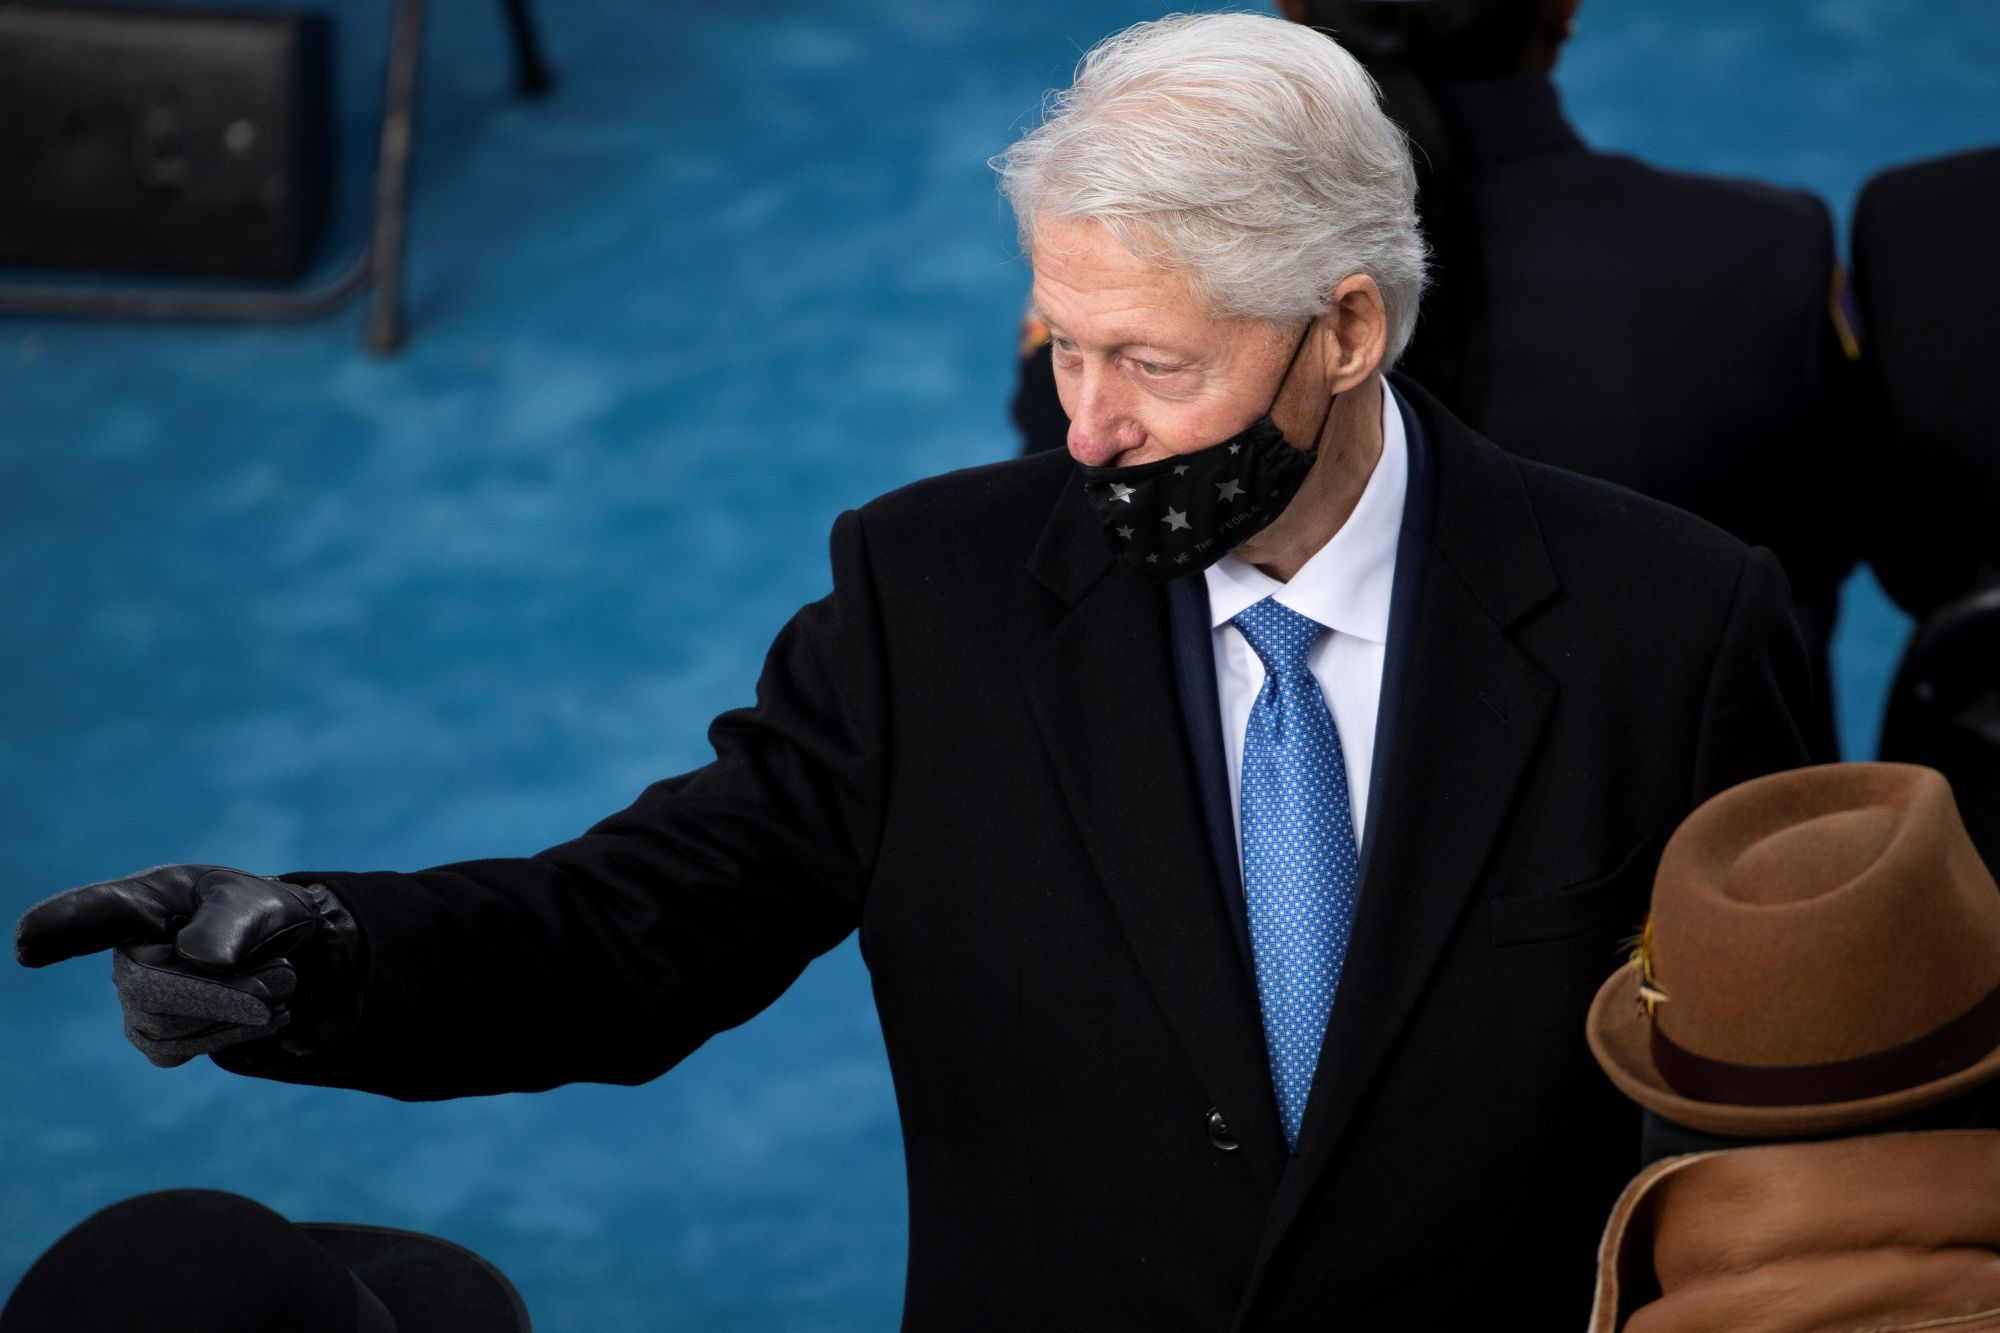 Former US President Bill Clinton gestures as he arrives for the inauguration of Joe Biden as the 46th US President on January 20, 2021, at the US Capitol in Washington, DC. (Photo by Caroline Brehman / POOL / AFP) (Photo by CAROLINE BREHMAN/POOL/AFP via Getty Images)